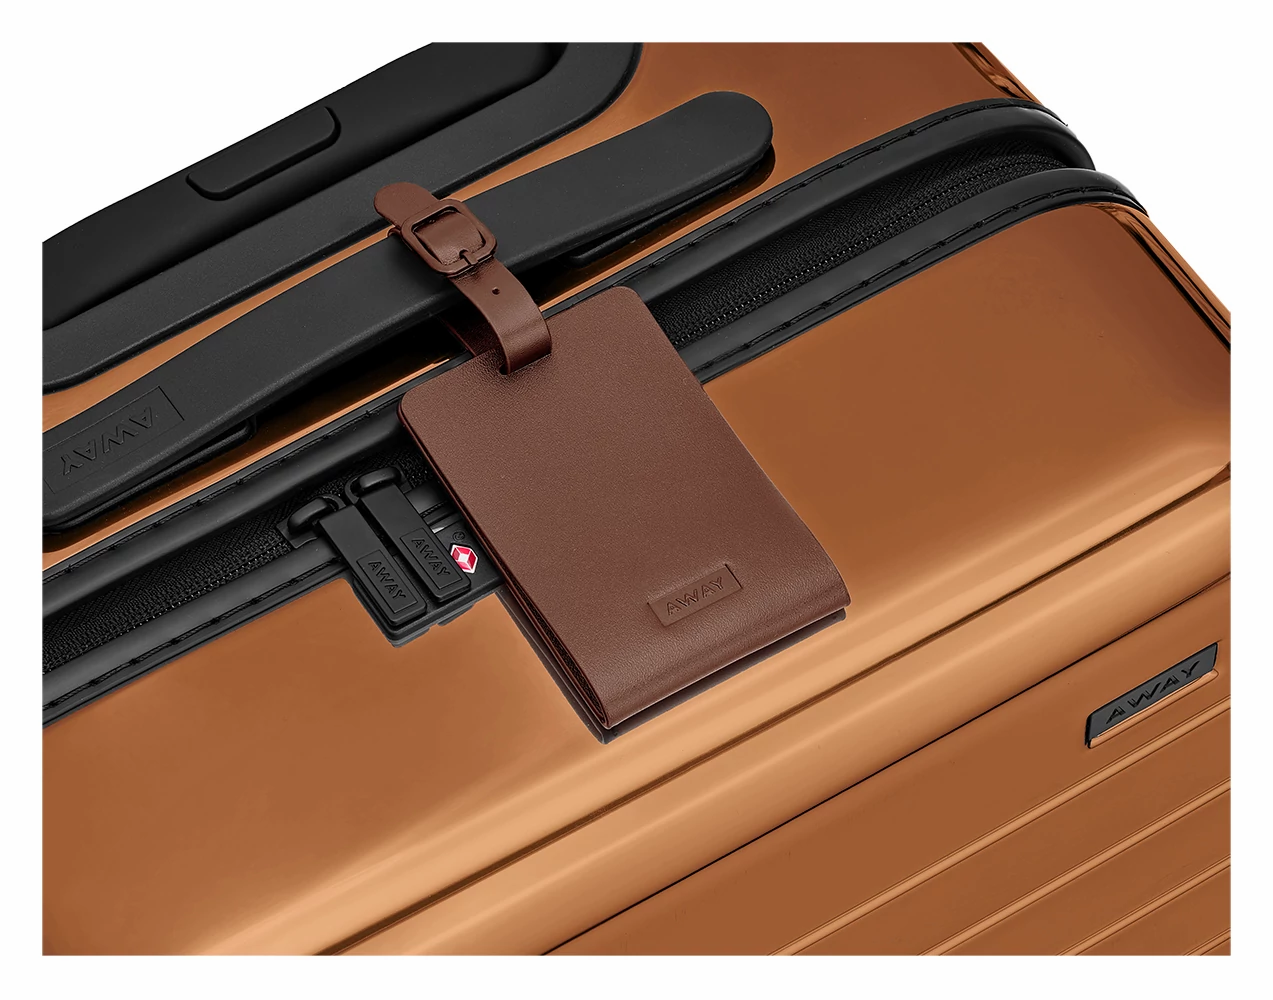 Brown leather luggage tag shown on handle of Copper hard suitcase.